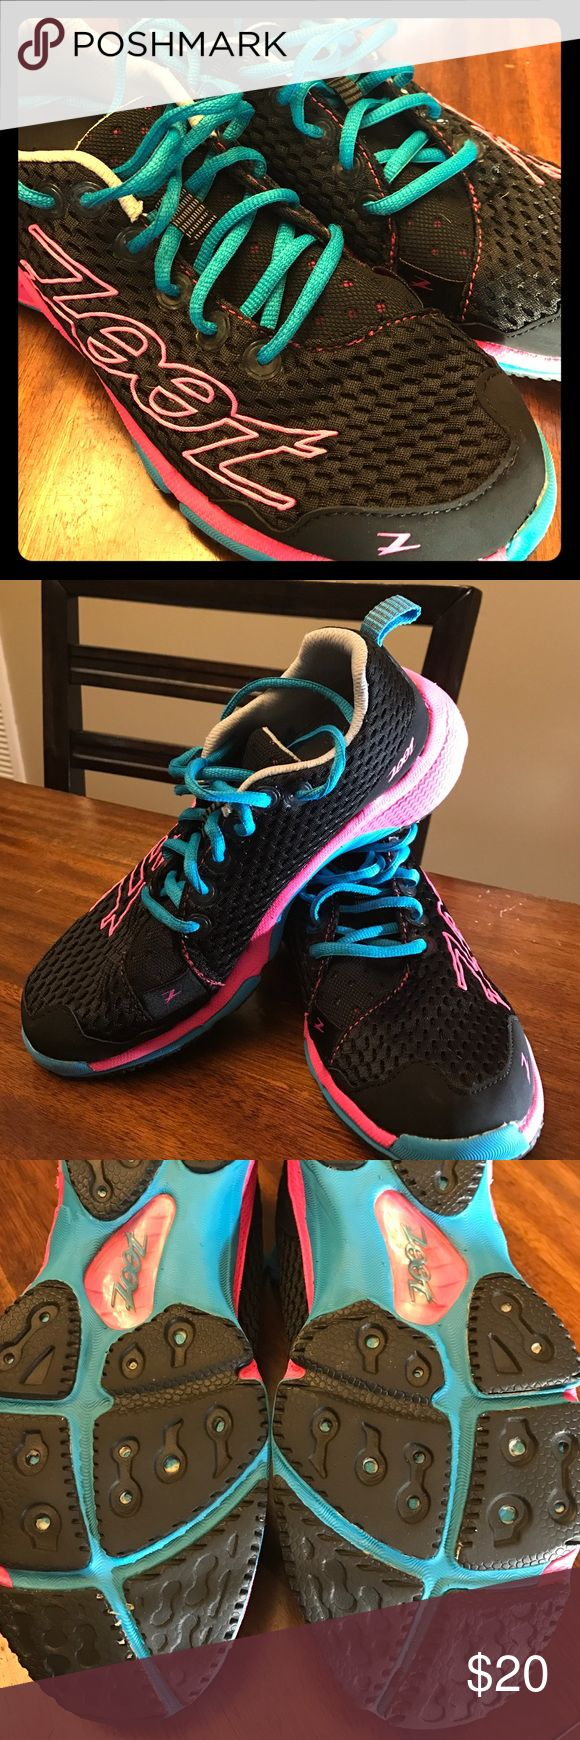 Ladies Running Shoes Black sneakers with hot pink and turquoise blue. The soles do show wear but other than that these sneaks are in great shape. They are made for triathlon runners so they are incredibly breathable. Zoot Shoes Athletic Shoes